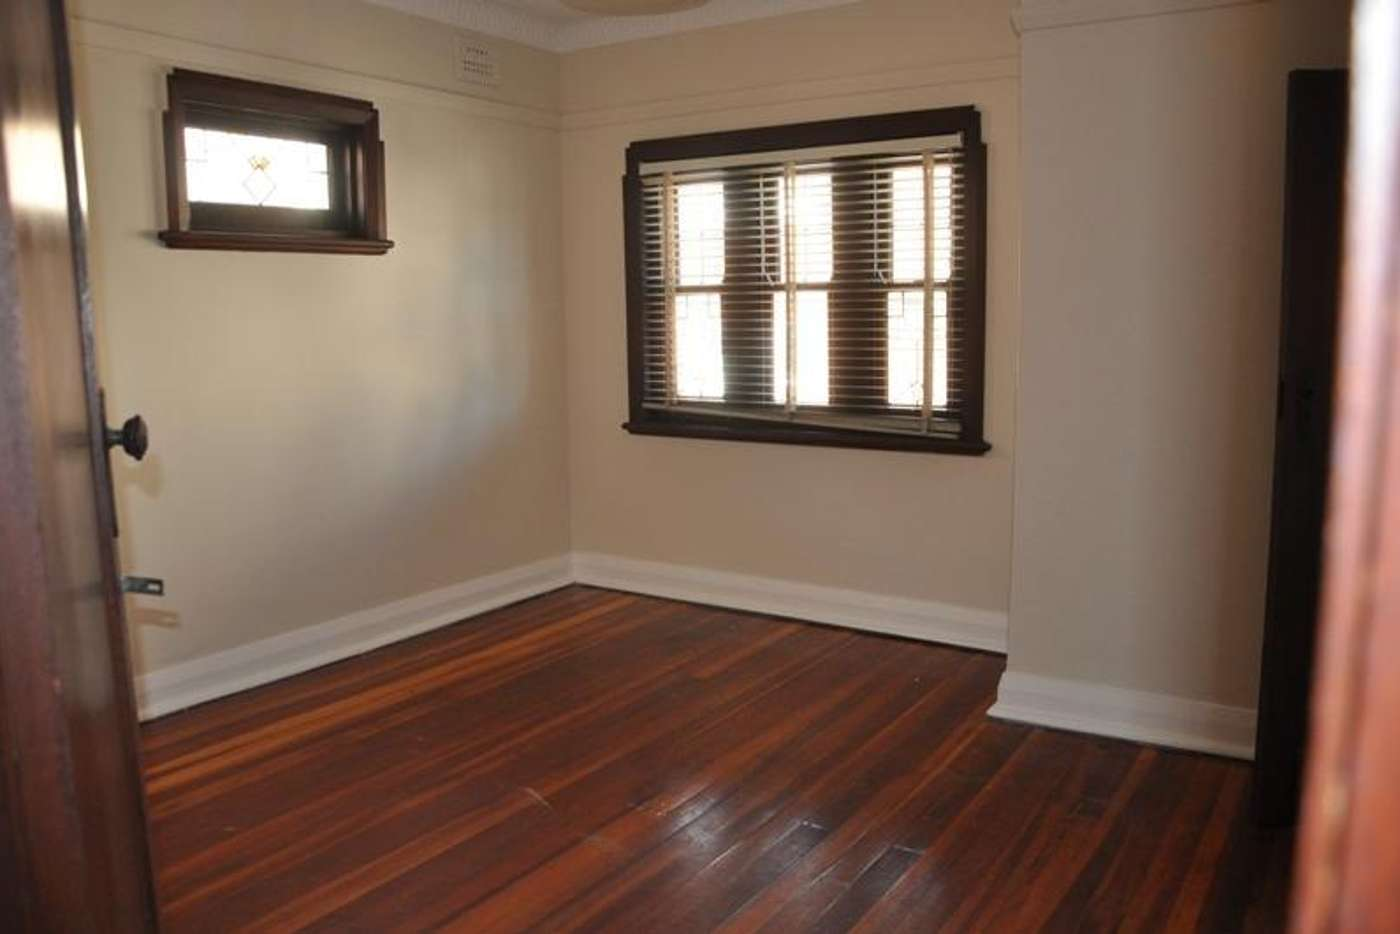 Main view of Homely unit listing, 3/2A Sadlier Crescent, Petersham NSW 2049